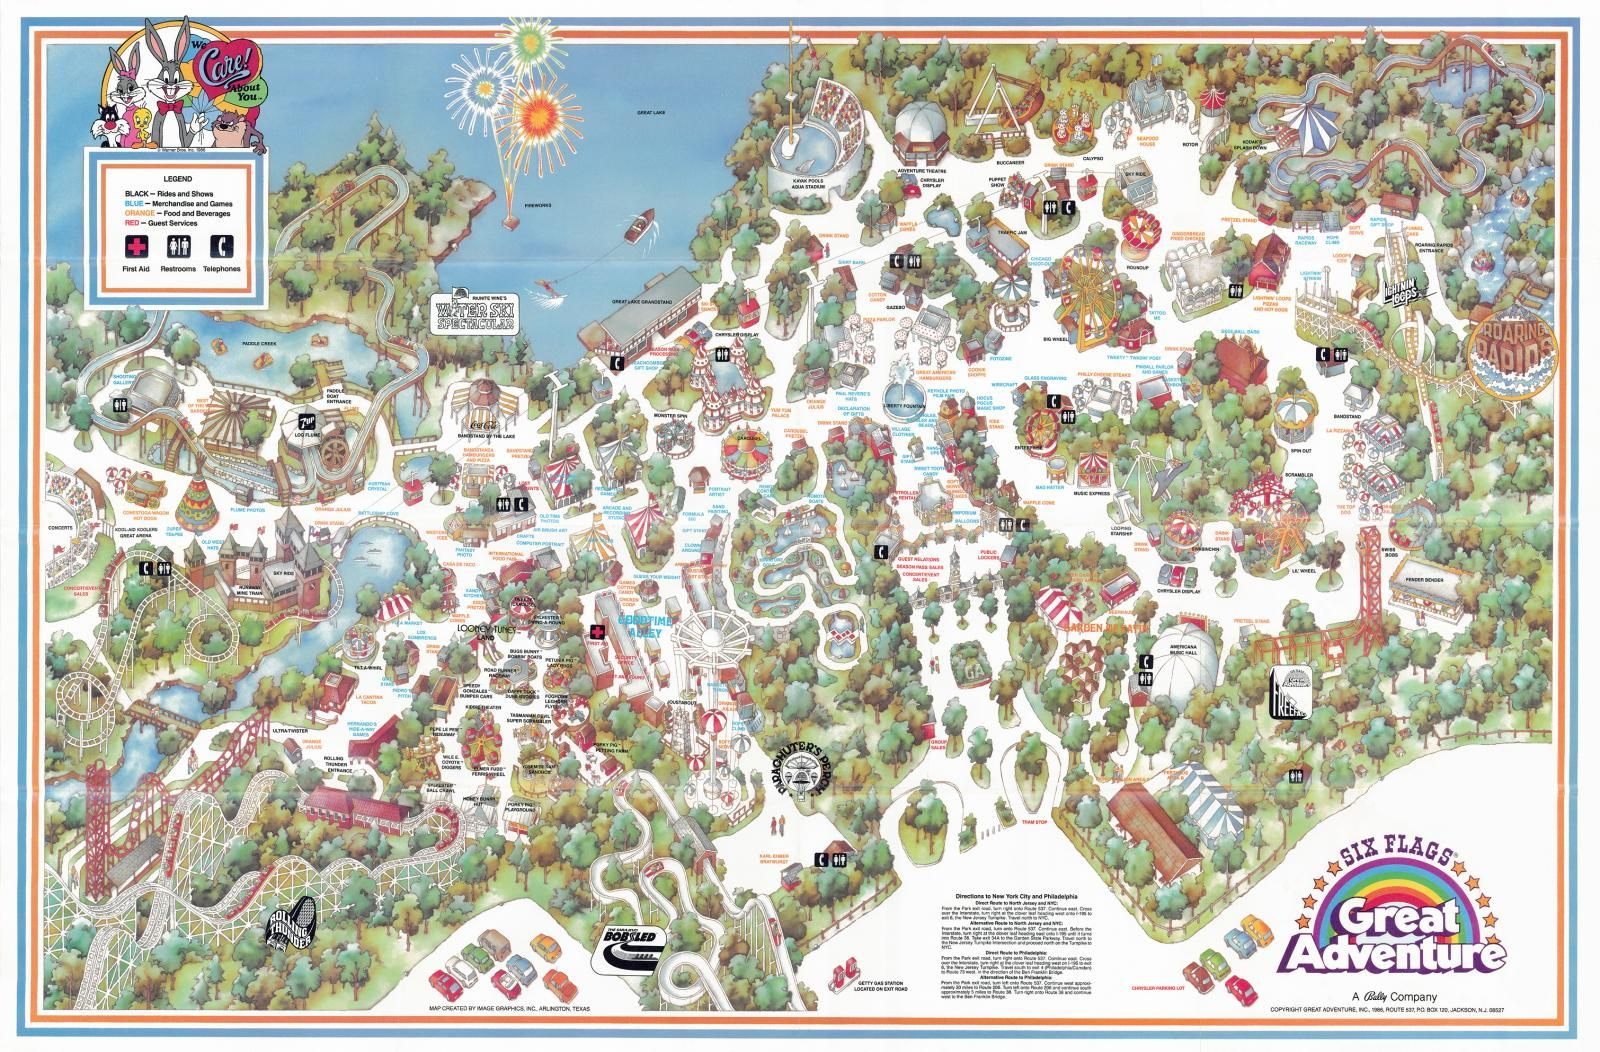 Six Flags Great Adventure 1986 :: Honey Bunny - a very ... on six flags nj map, magic springs and crystal falls map, dorney park map, washington street mall map, kingda ka map, mt. olympus water & theme park map, kiddieland map, kennywood map, holiday world santa claus indiana map, the gallery at market east map, penn hills resort map, knott's berry farm map, magic kingdom map, 2014 six flags magic mountain map, great america map, cedar point map, thorpe park map, wyandot lake map, big e fair map, 2014 six flags over georgia map,